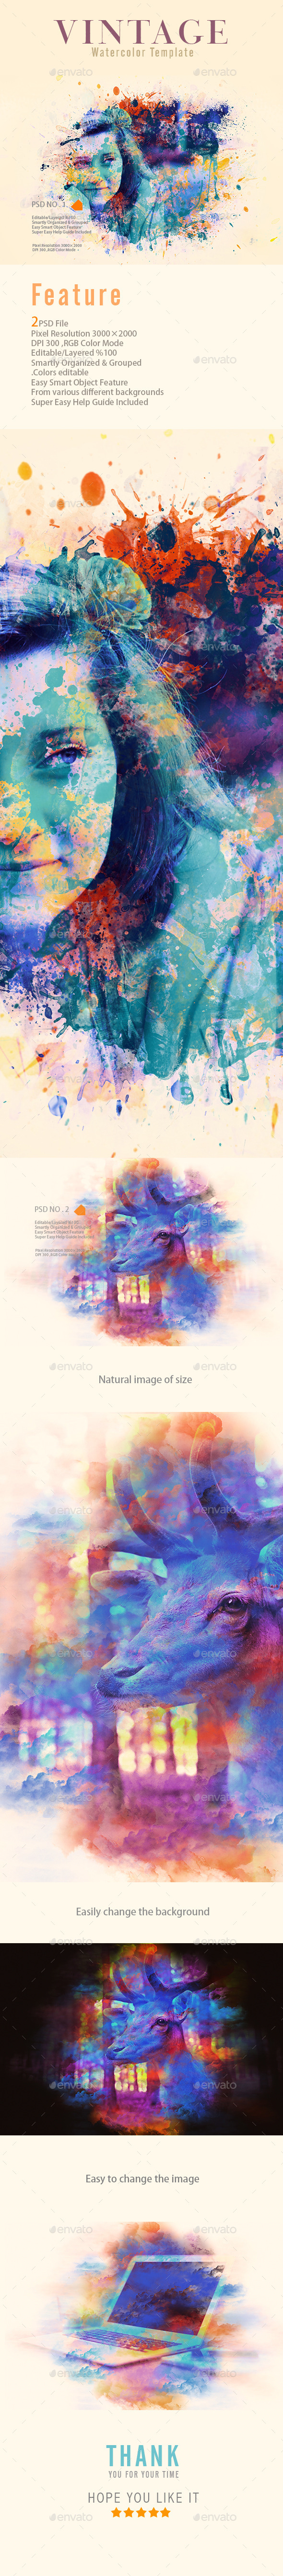 GraphicRiver Vintage Watercolor Template 11000833